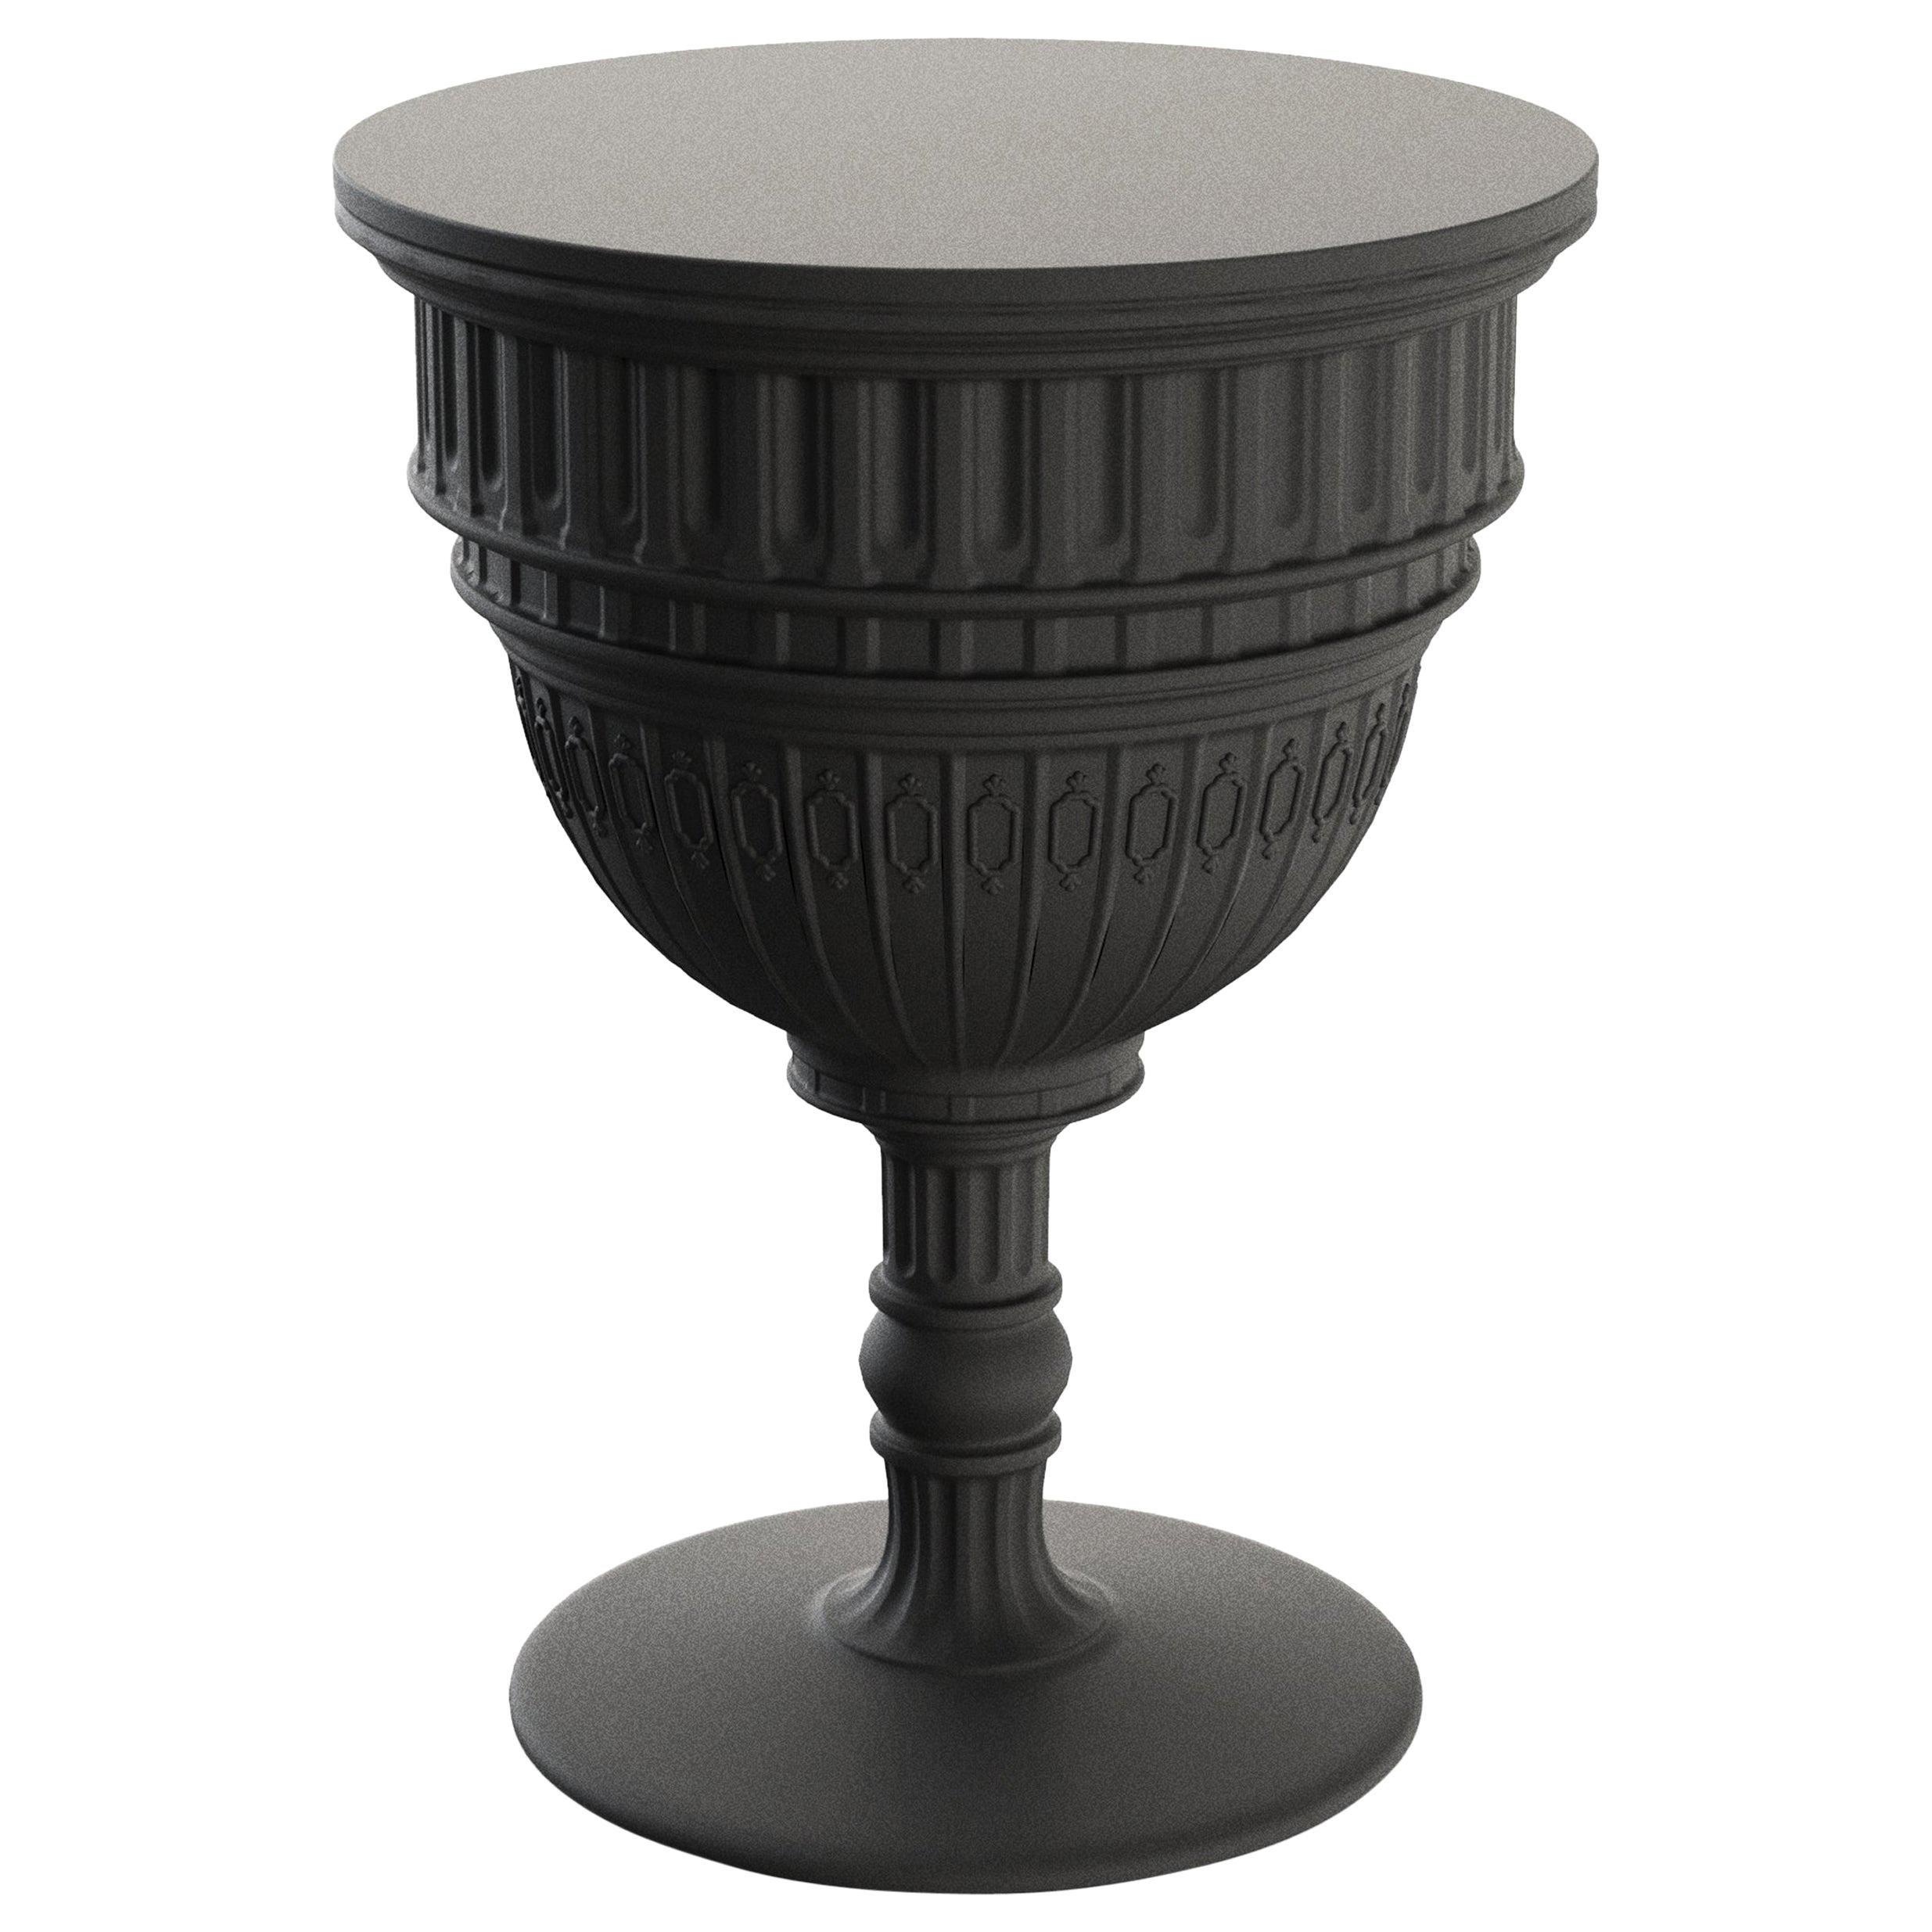 Modern Neoclassic Black Plastic Side Table by Studio Job